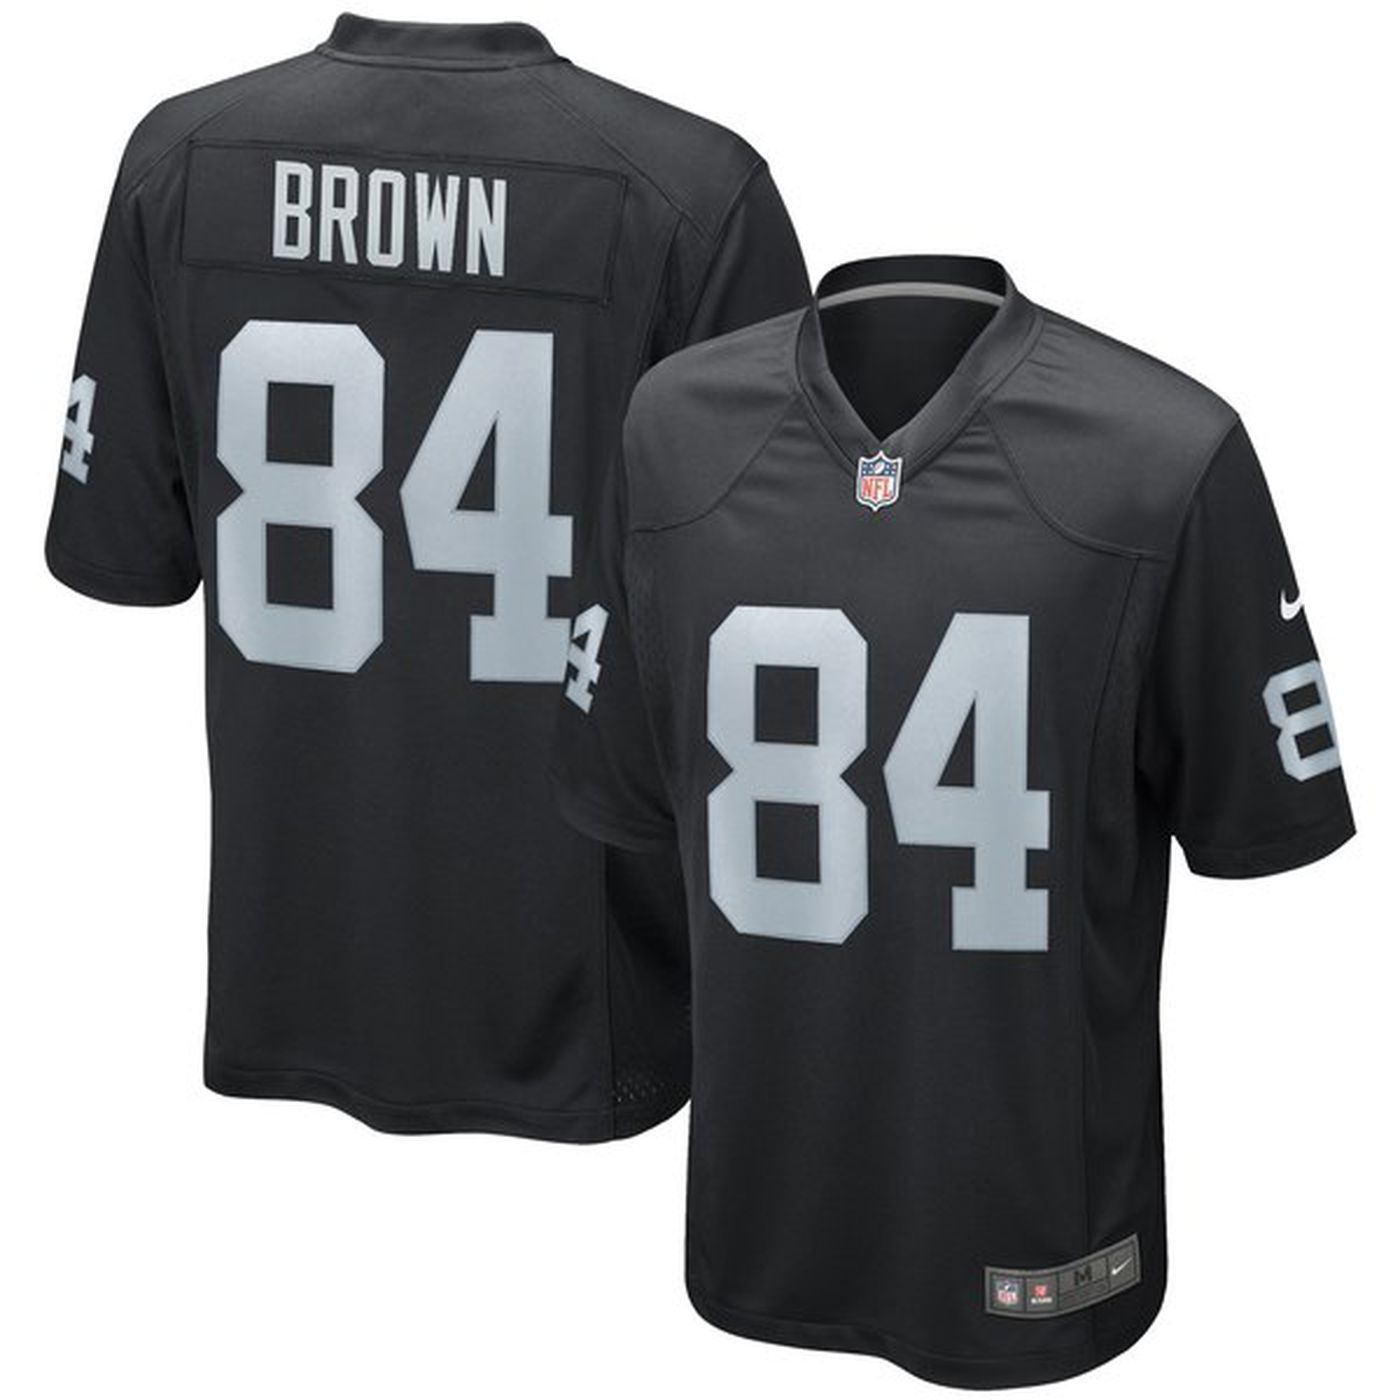 Here s what the new Antonio Brown Oakland Raiders jerseys look like ... ff6450250bf9